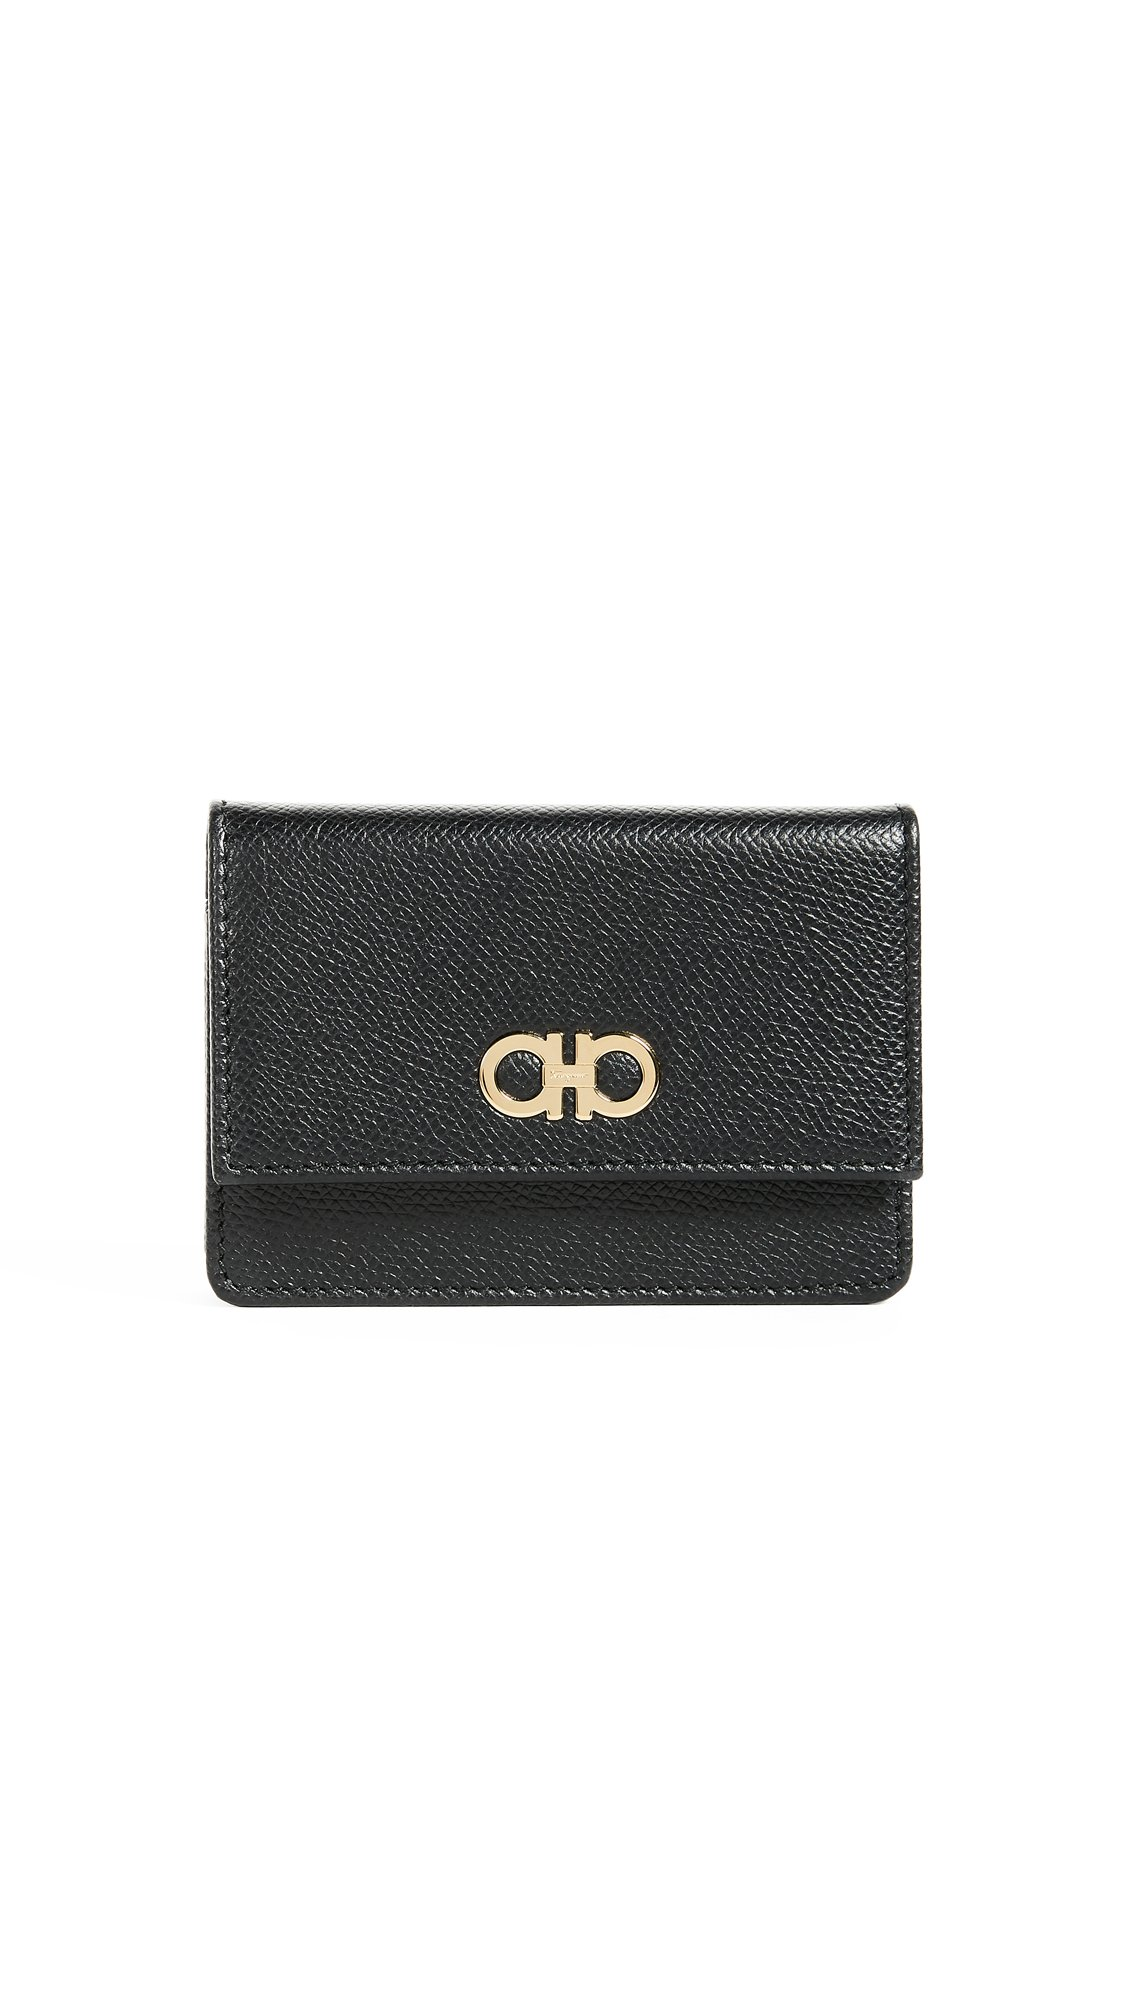 Salvatore Ferragamo Women's Gancini Card Case, Nero, One Size